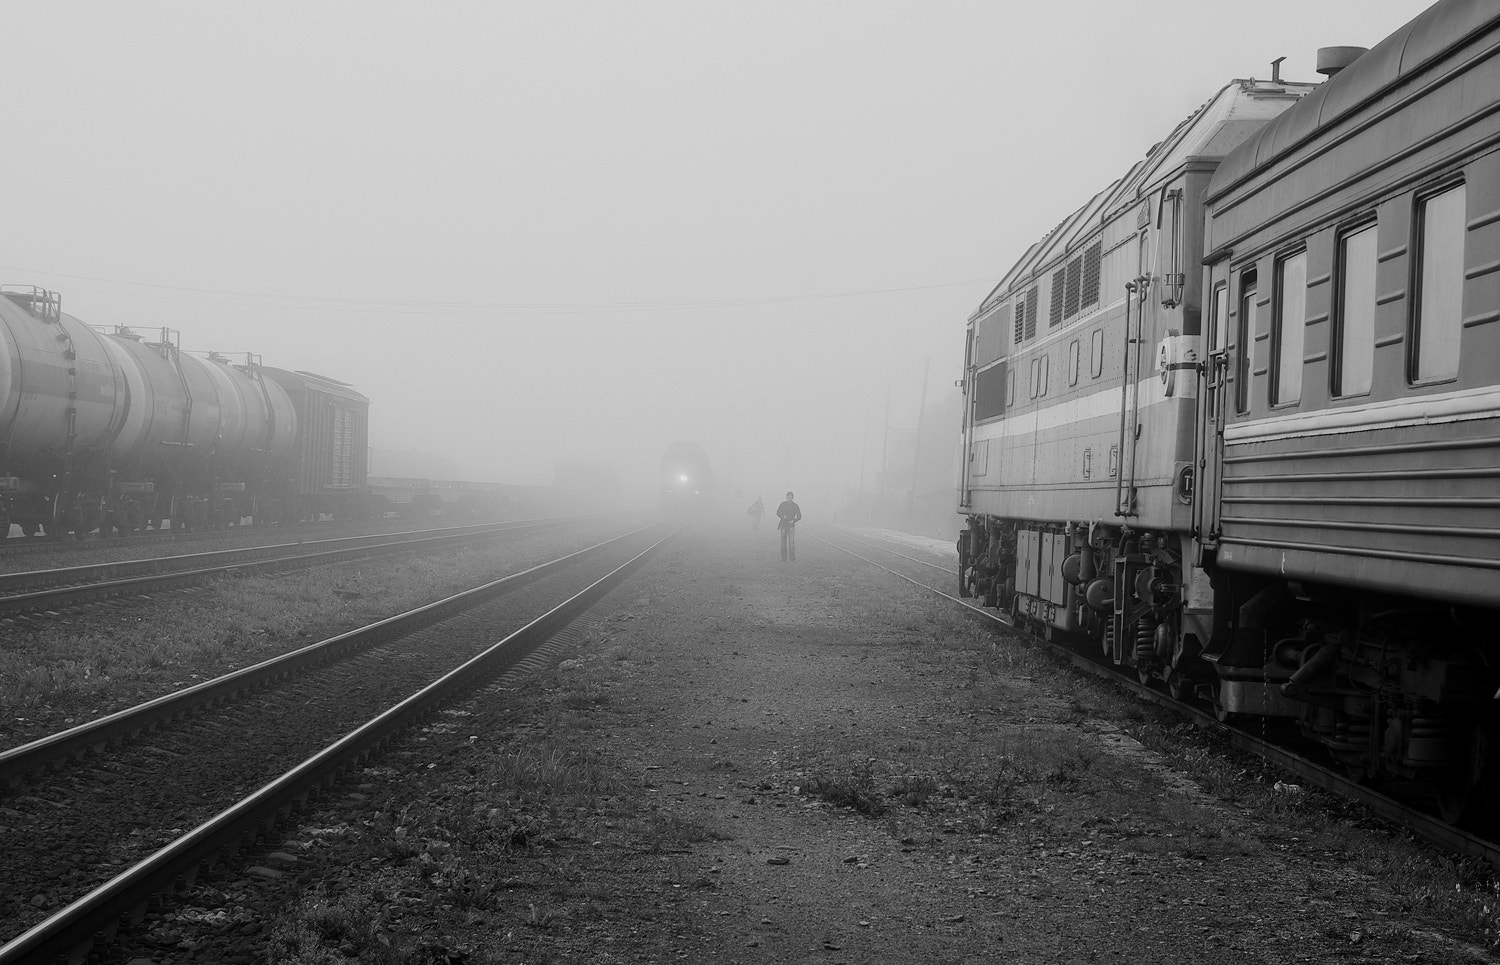 Photograph arrival of the train by Vladimir Trenin on 500px